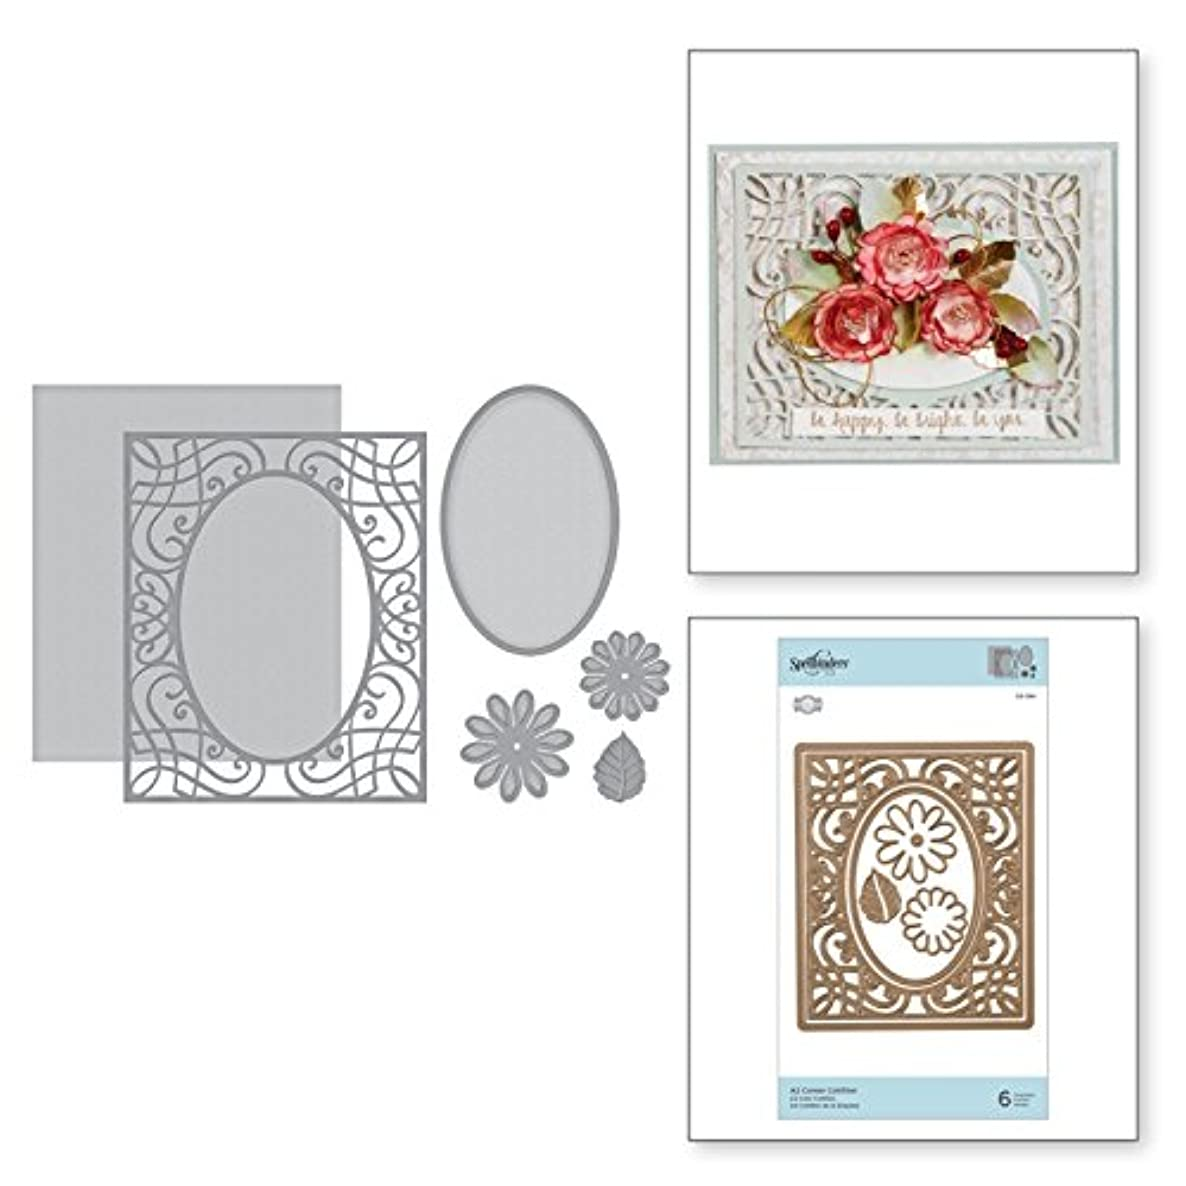 Spellbinders S5-364 Card Creator A2 Corner Cotillion Etched/Wafer Thin Dies